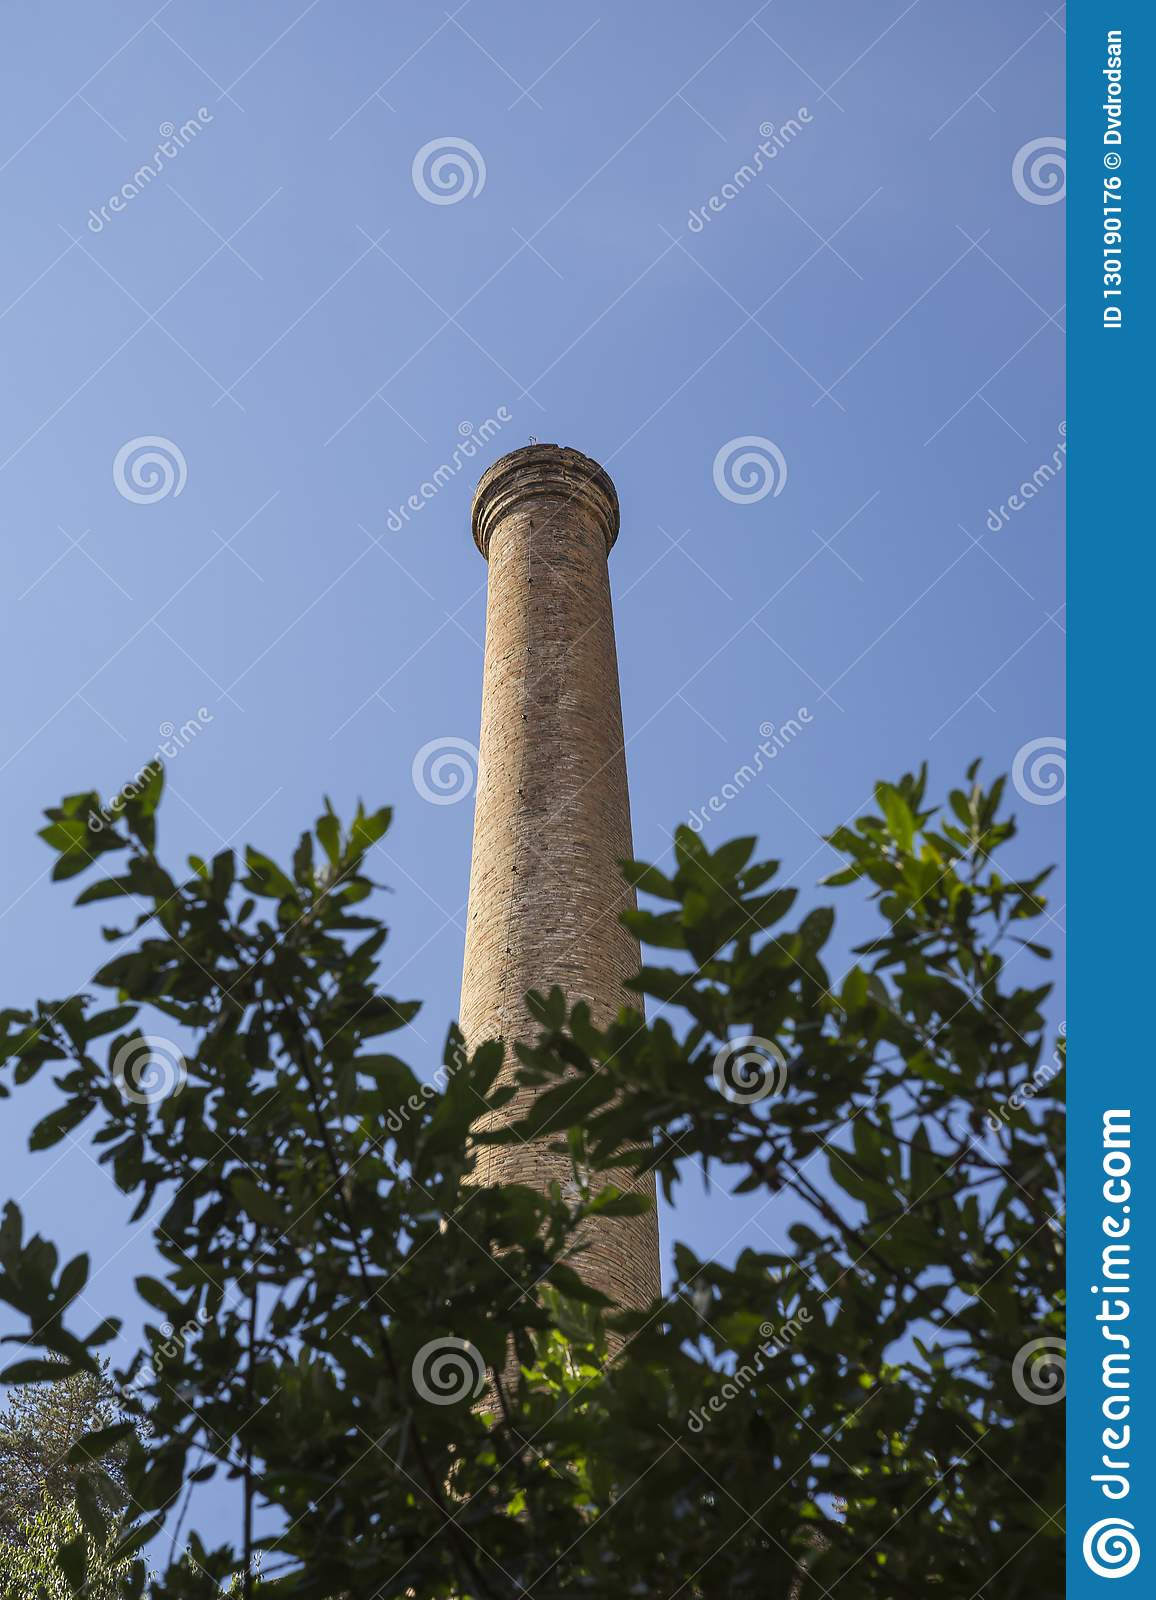 Old red brick chimney of an abandoned factory with blue sky background and trees foreground